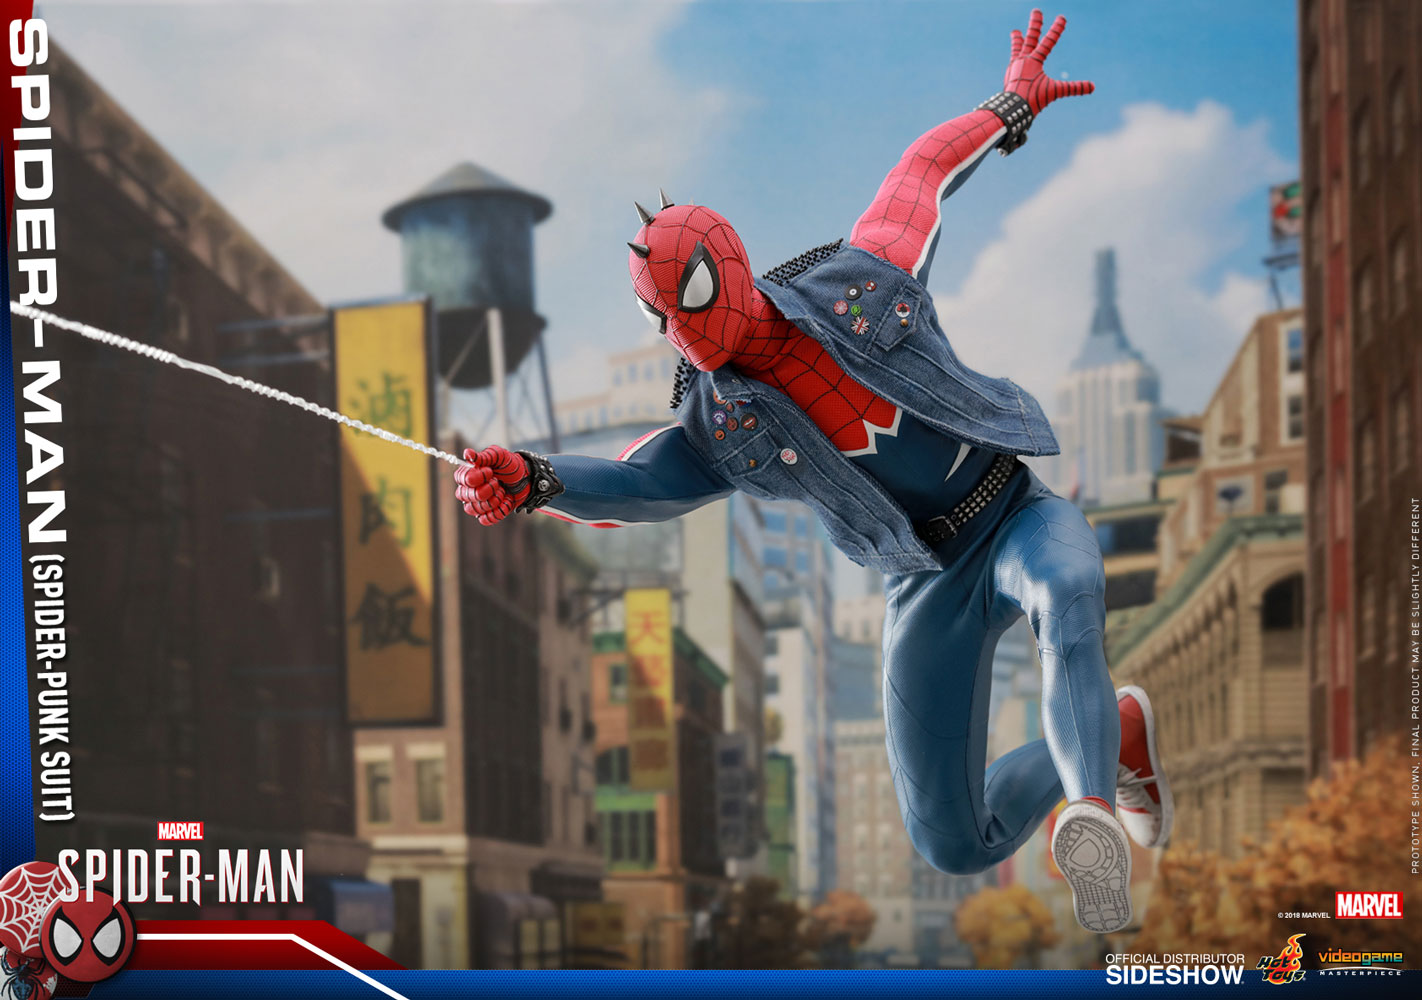 Sideshow's Week in Geek: Spider-Man PS4 | Sideshow Collectibles